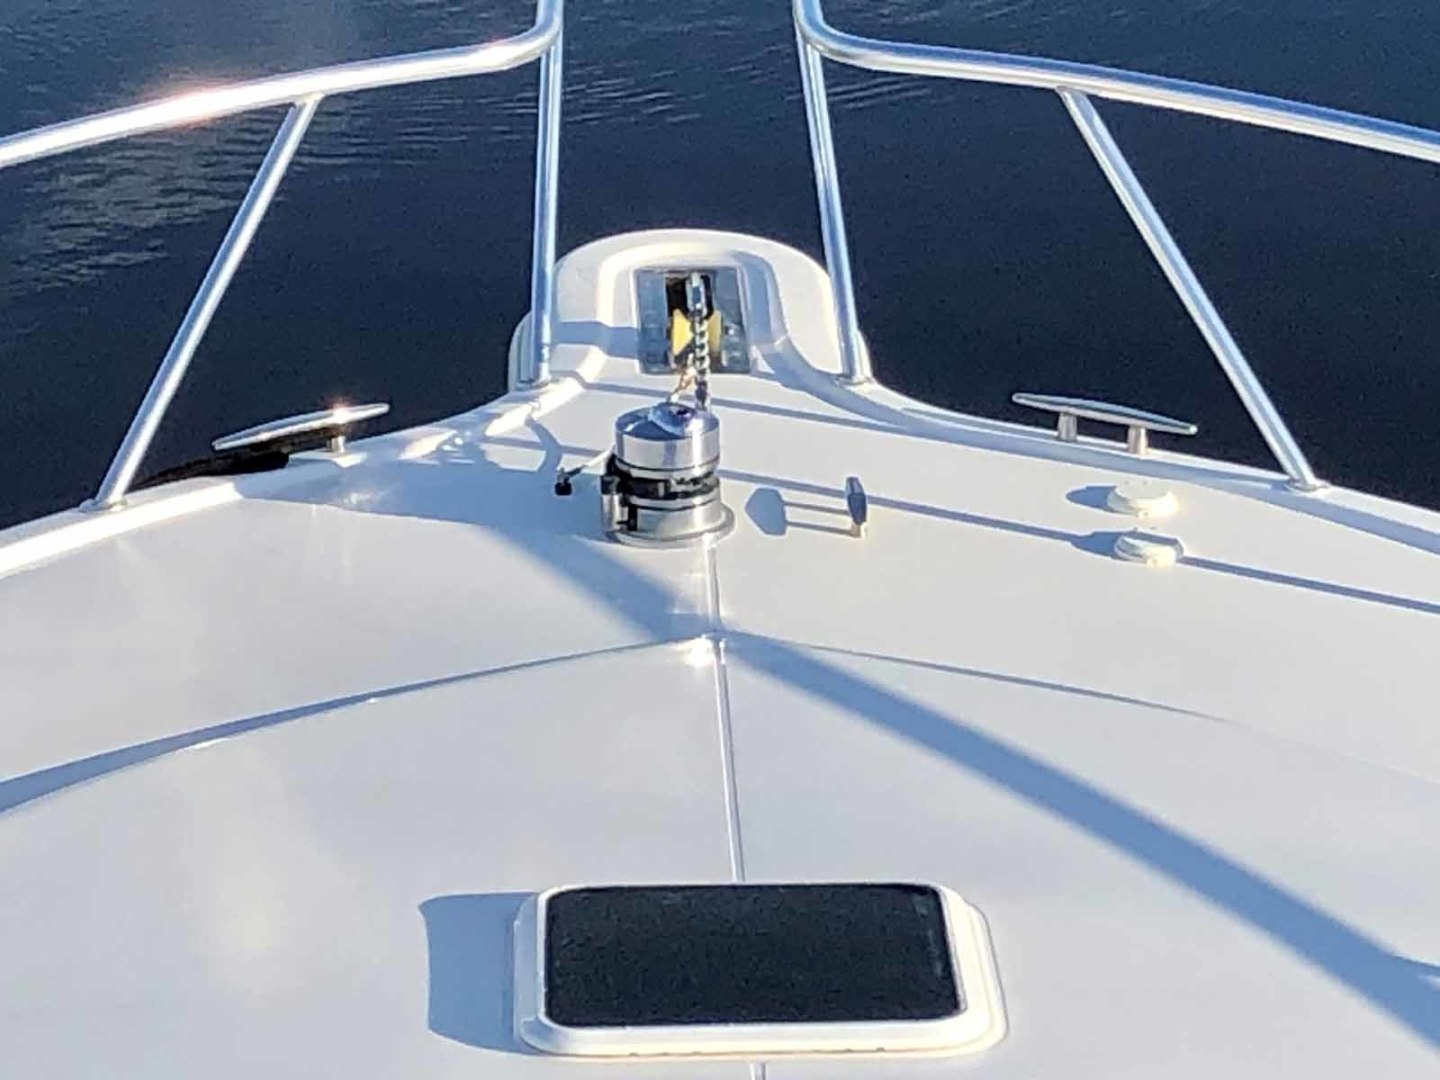 Rampage-45 SF 2004-MY DOLLY Ft. Lauderdale-Florida-United States-Windlass Detail-1464038 | Thumbnail